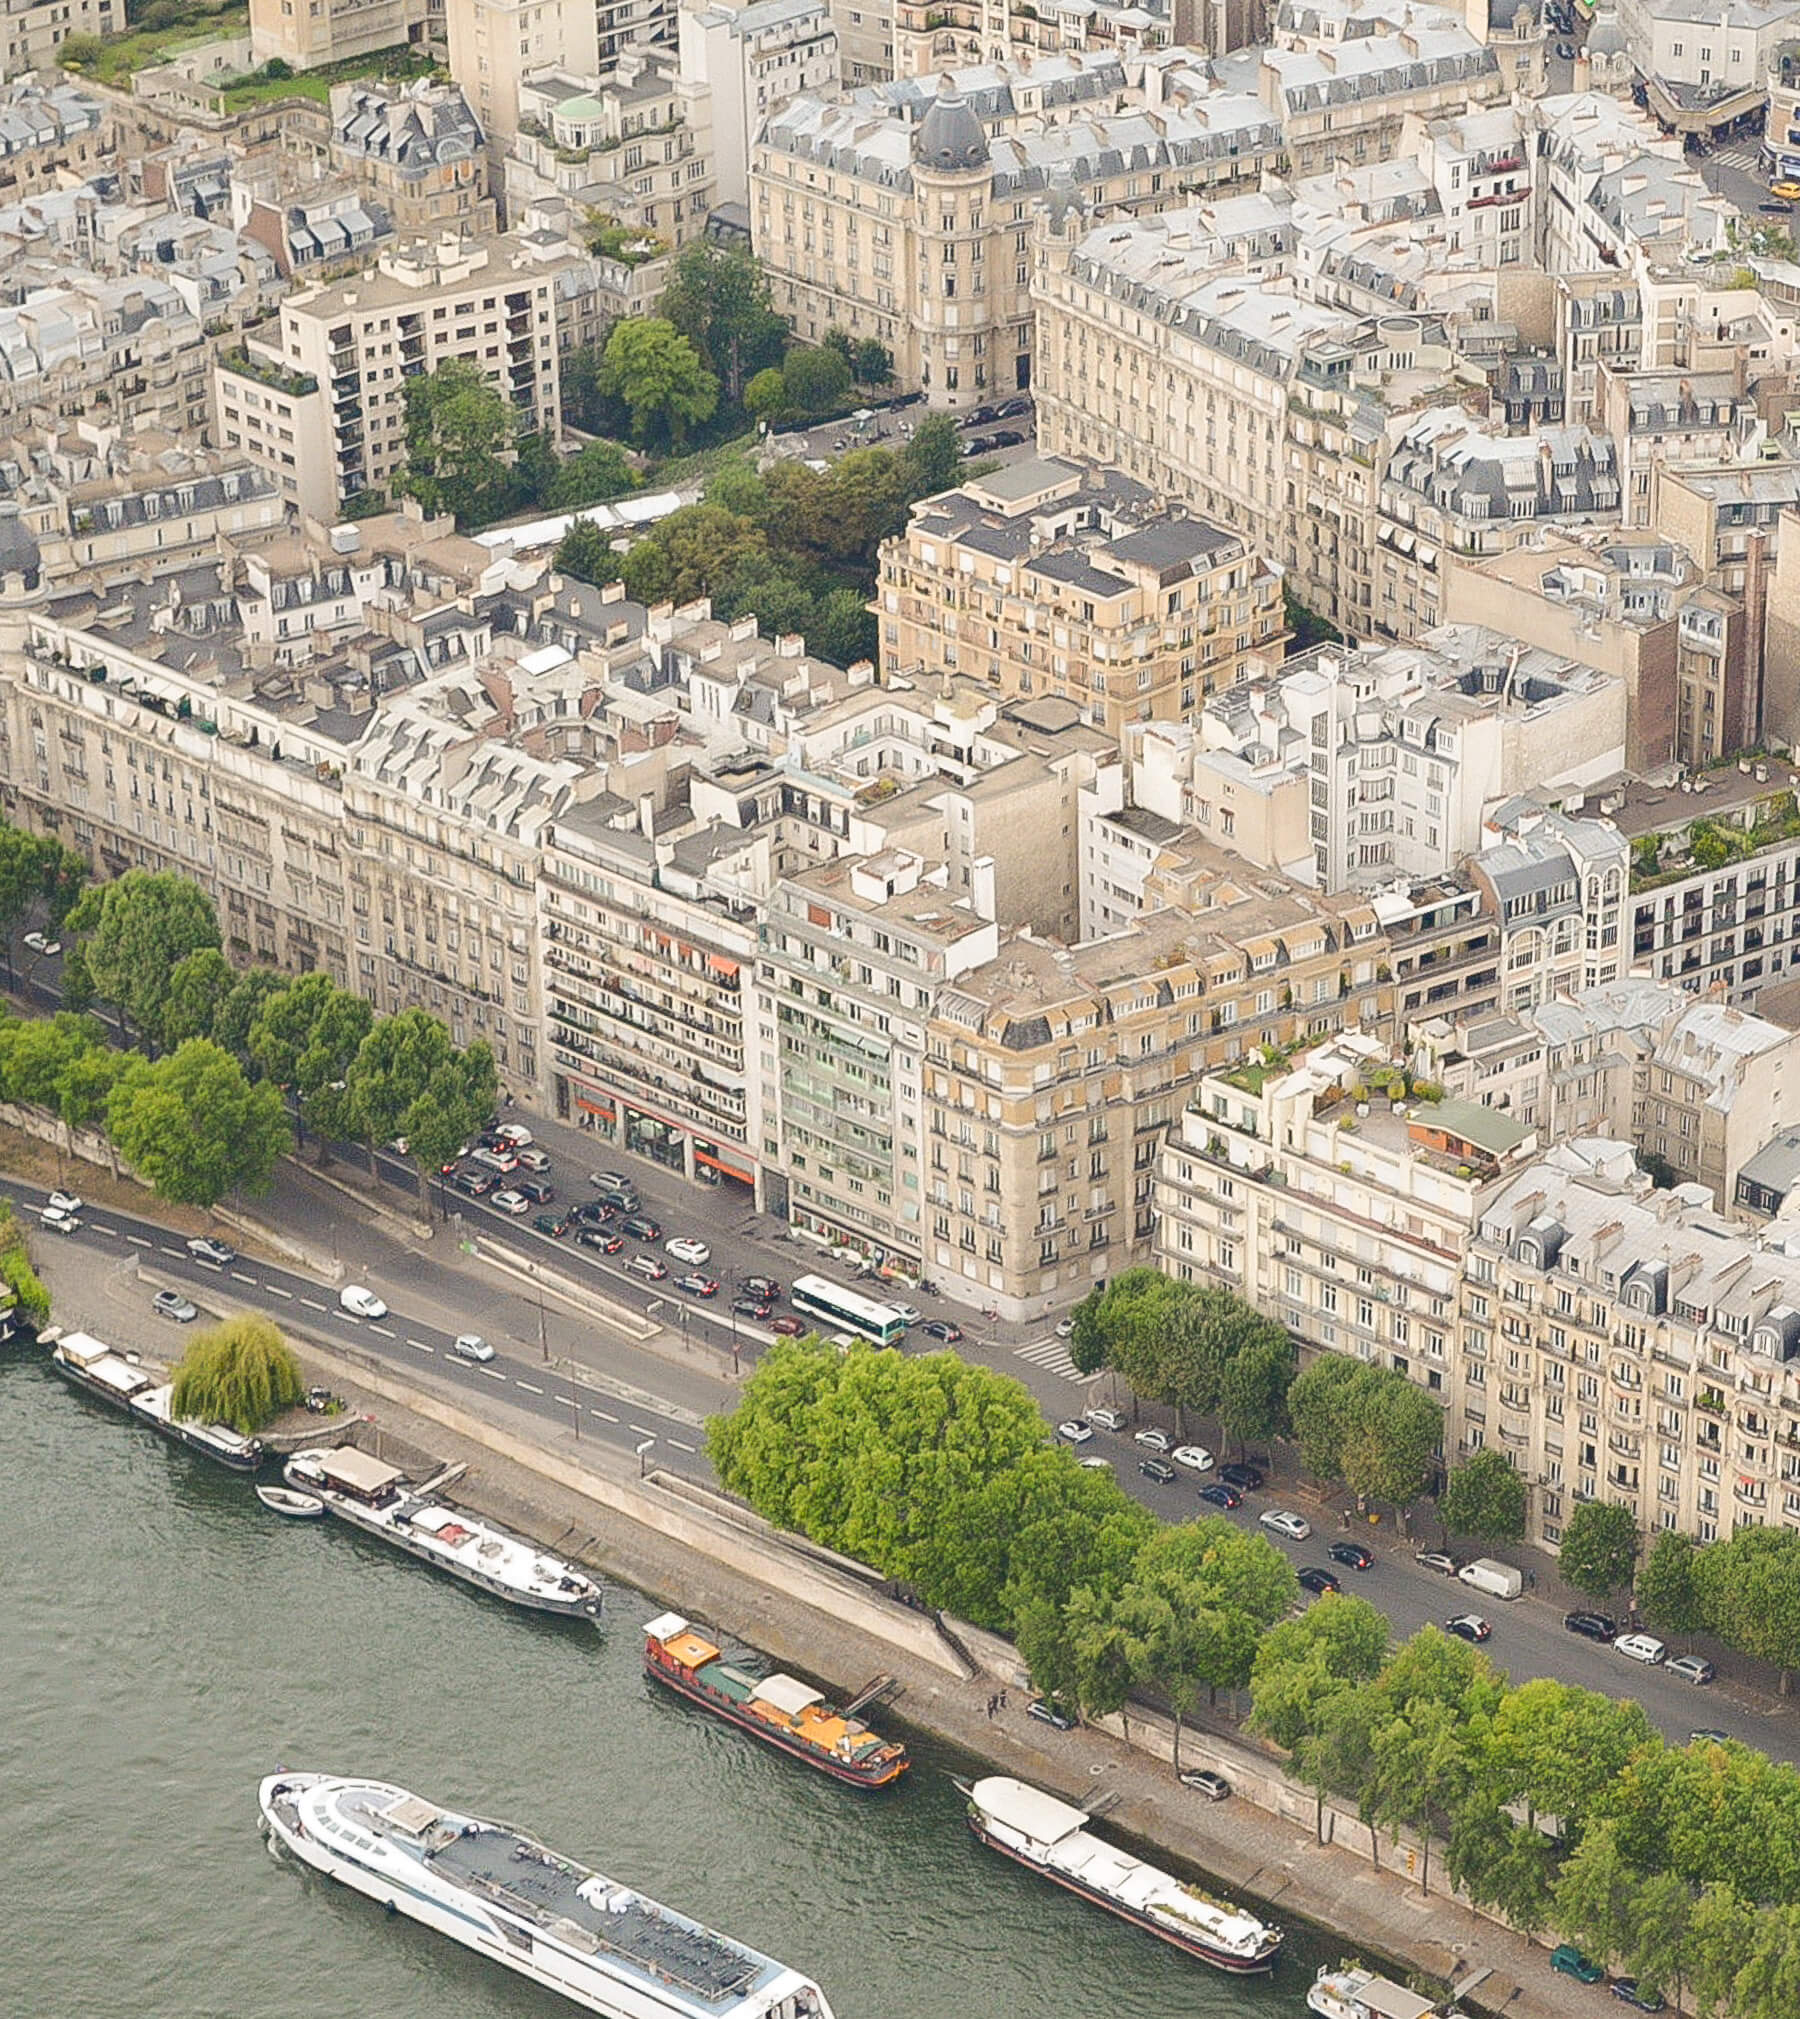 Birds eye view of city of love, Paris - Buildings, streets and river